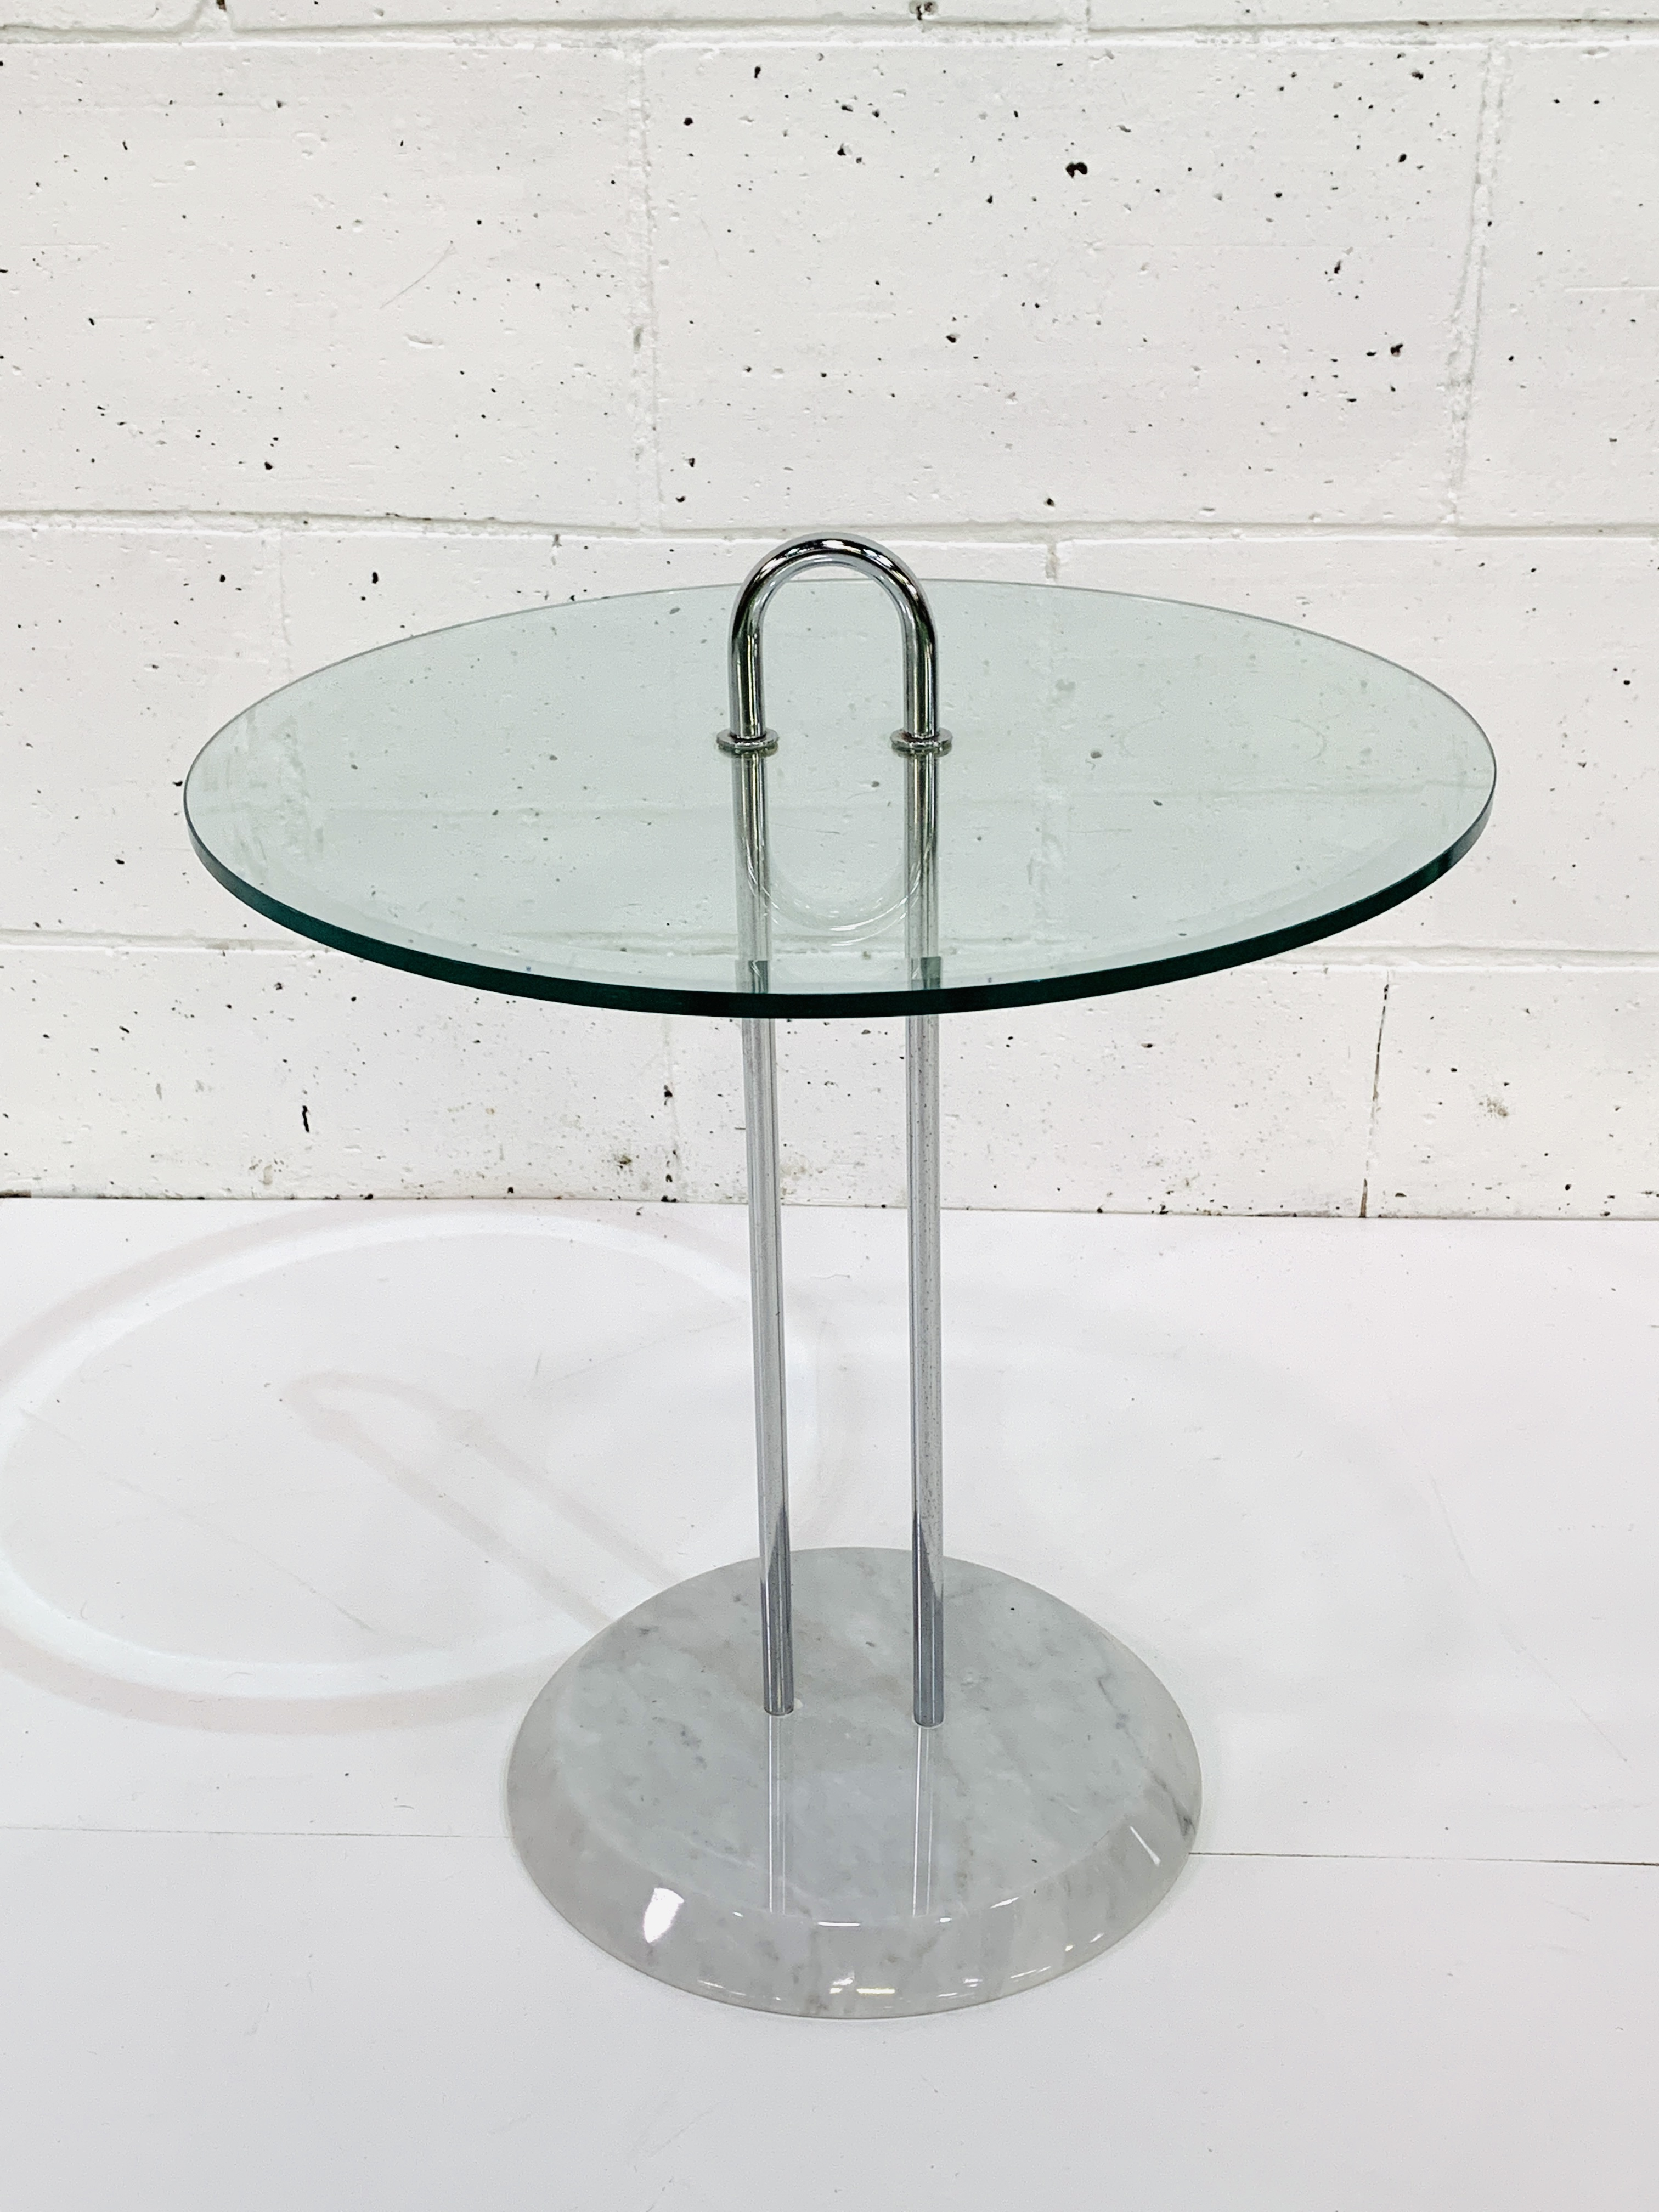 Circular bevelled edge glass top side table - Image 2 of 3